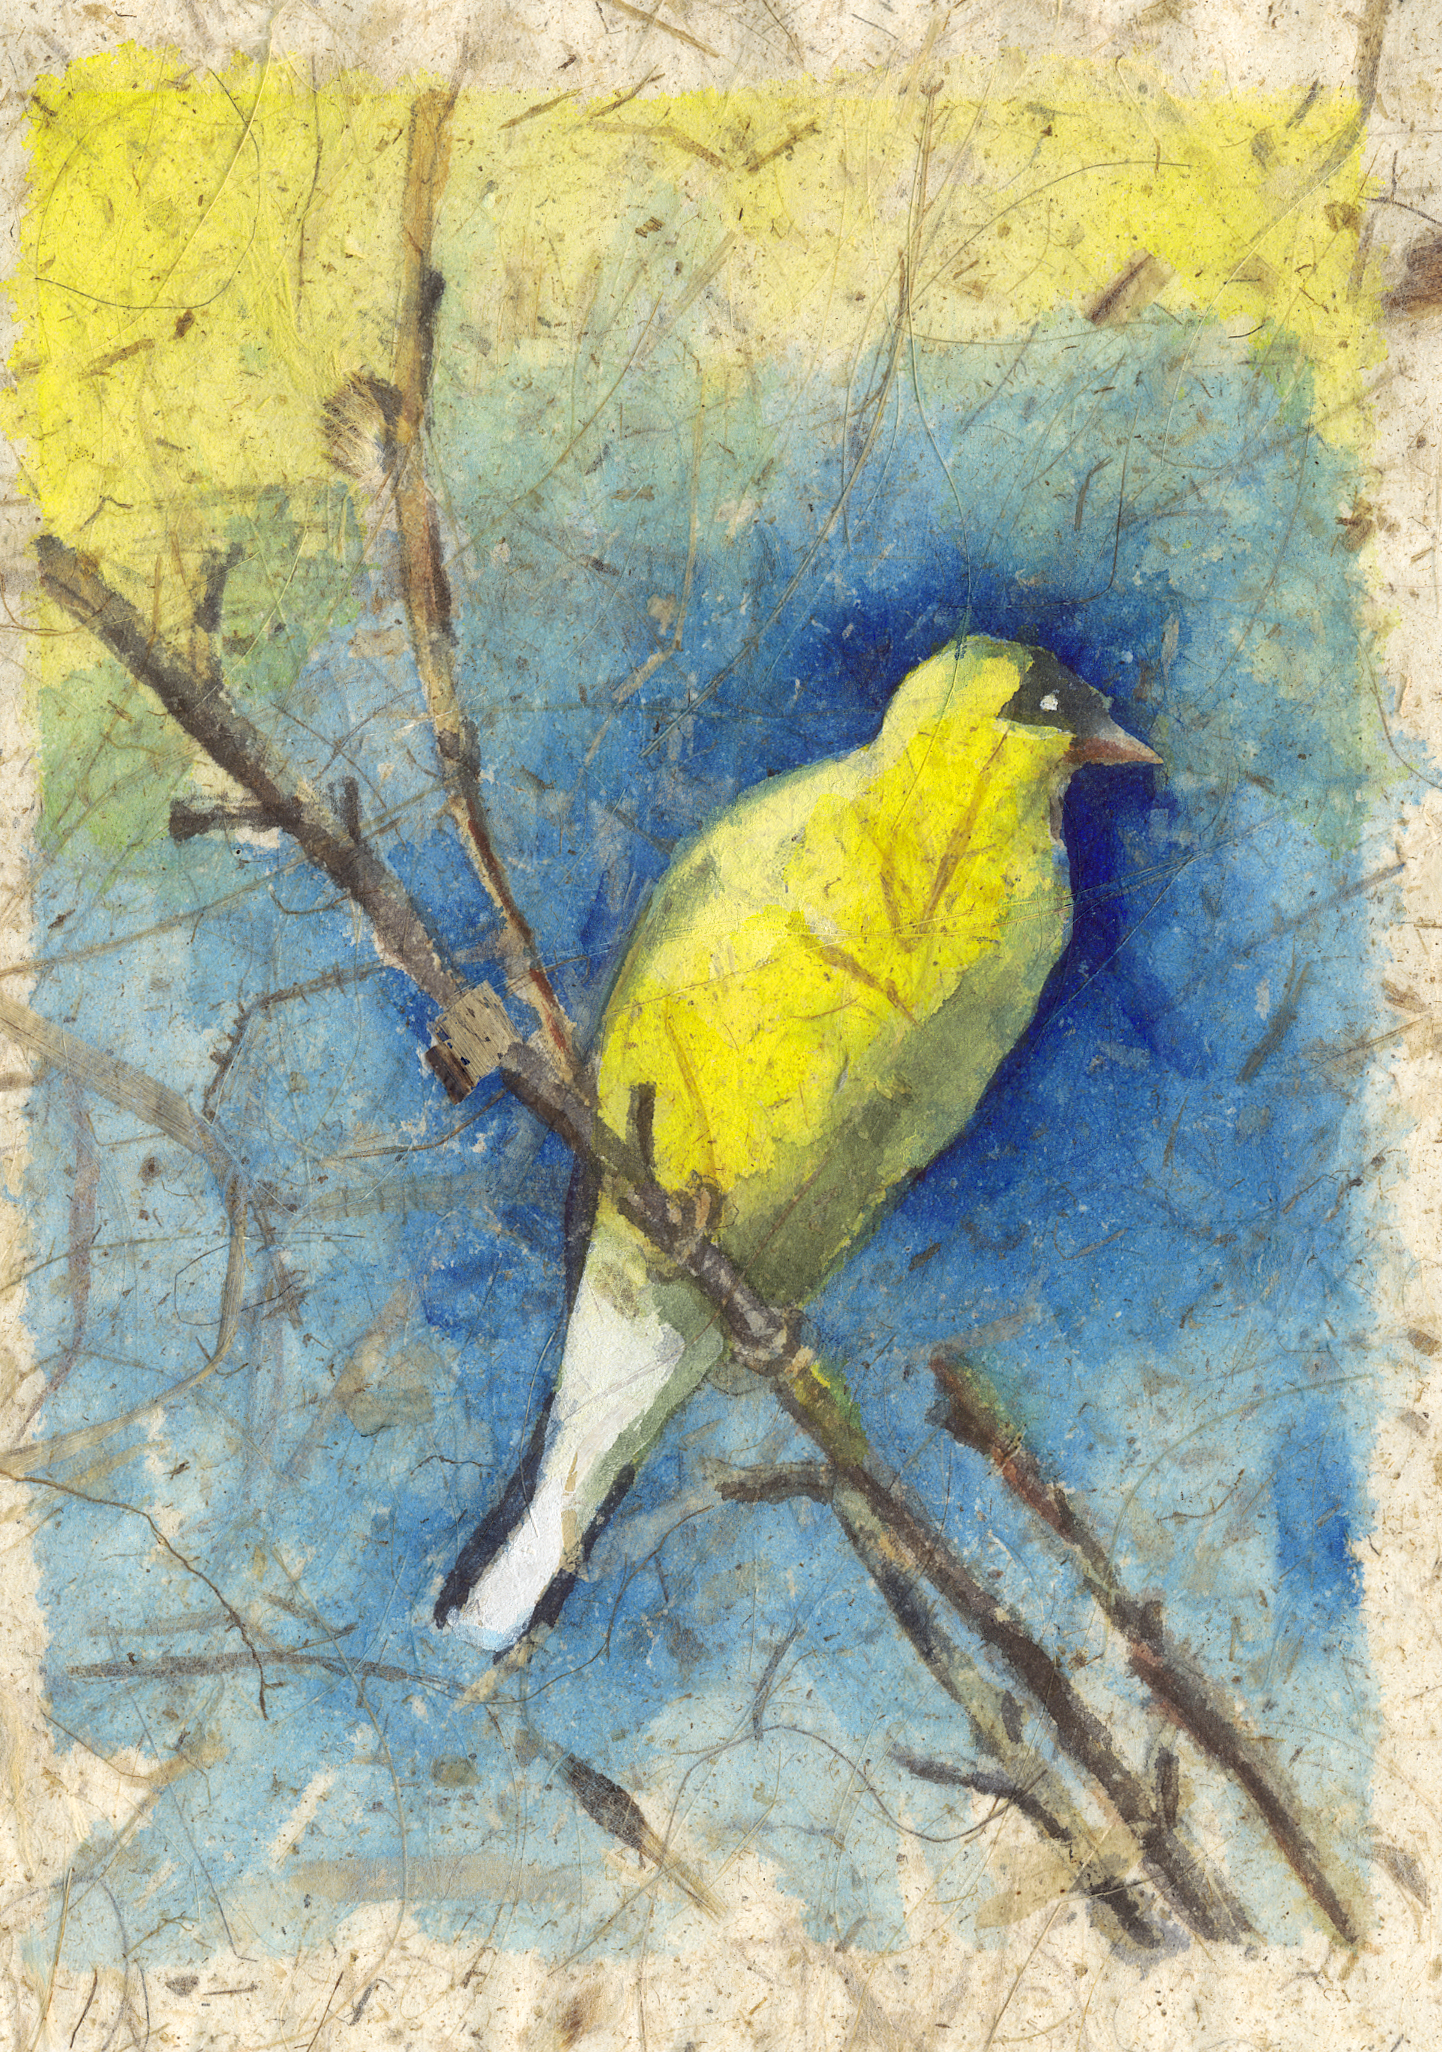 Yeloow Bird on Rice Paper